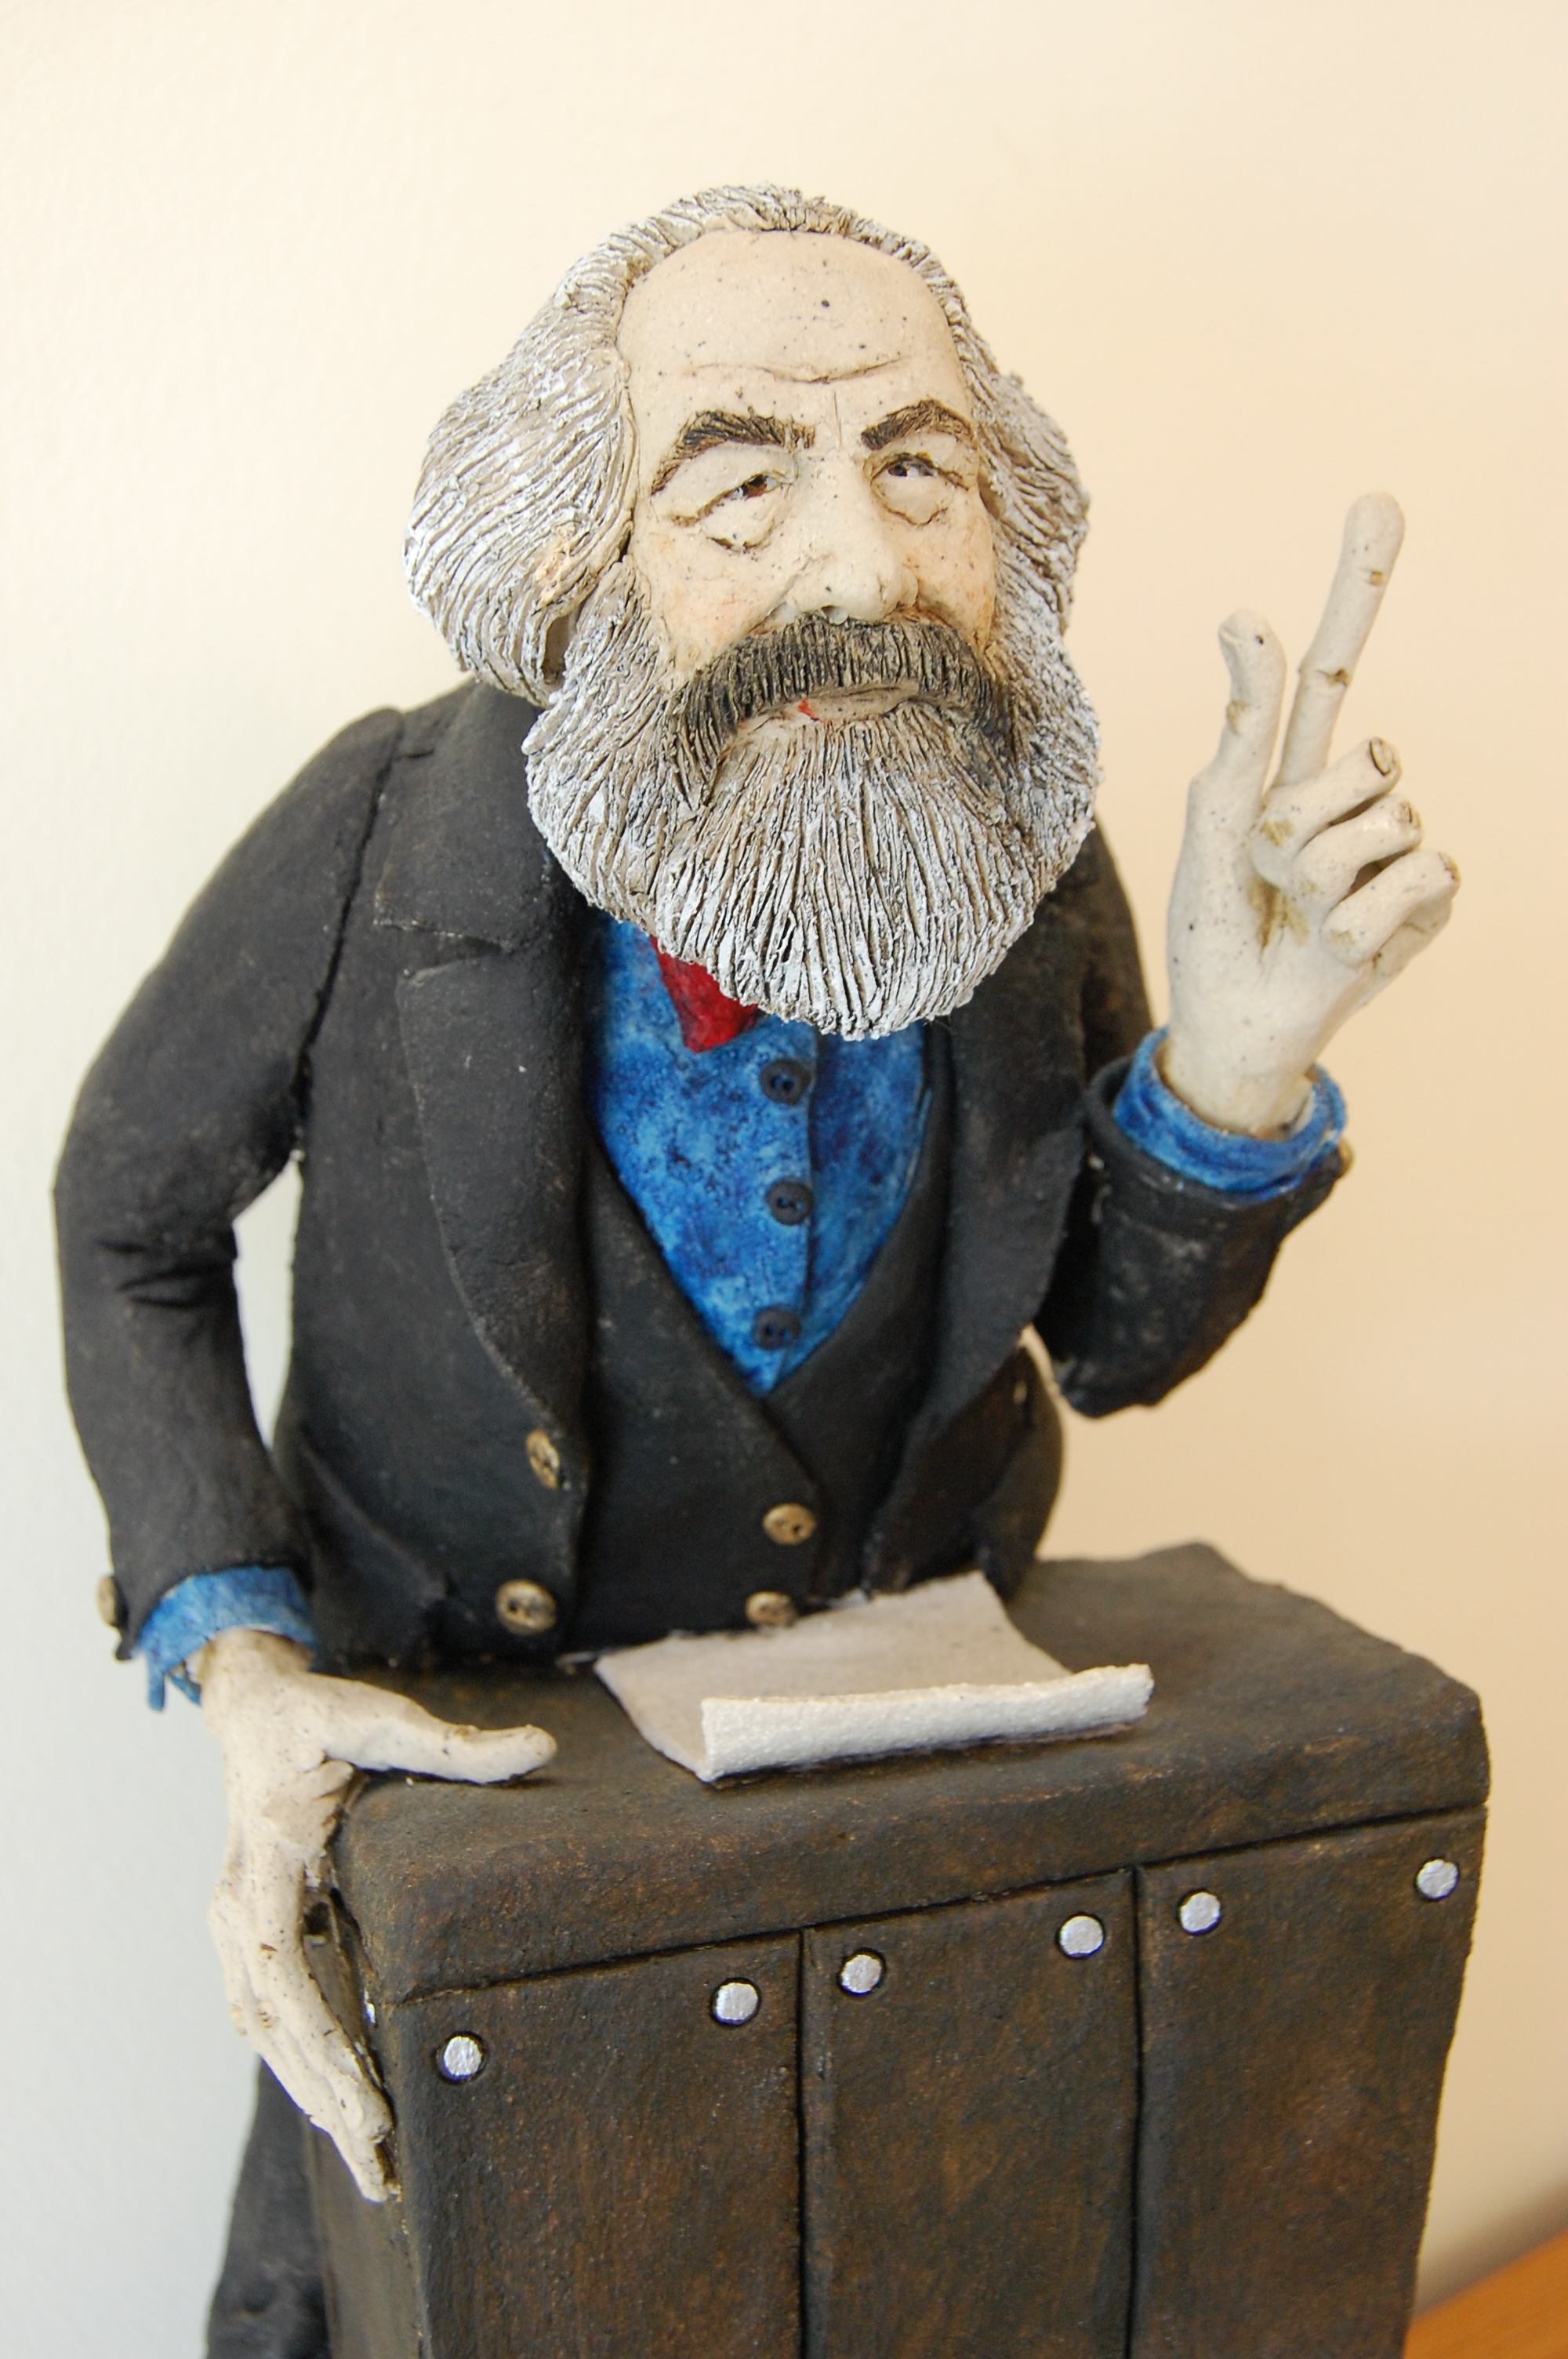 karl marx term papers Read this essay on karl marx come browse our large digital warehouse of free sample essays get the knowledge you need in order to pass your classes and more.